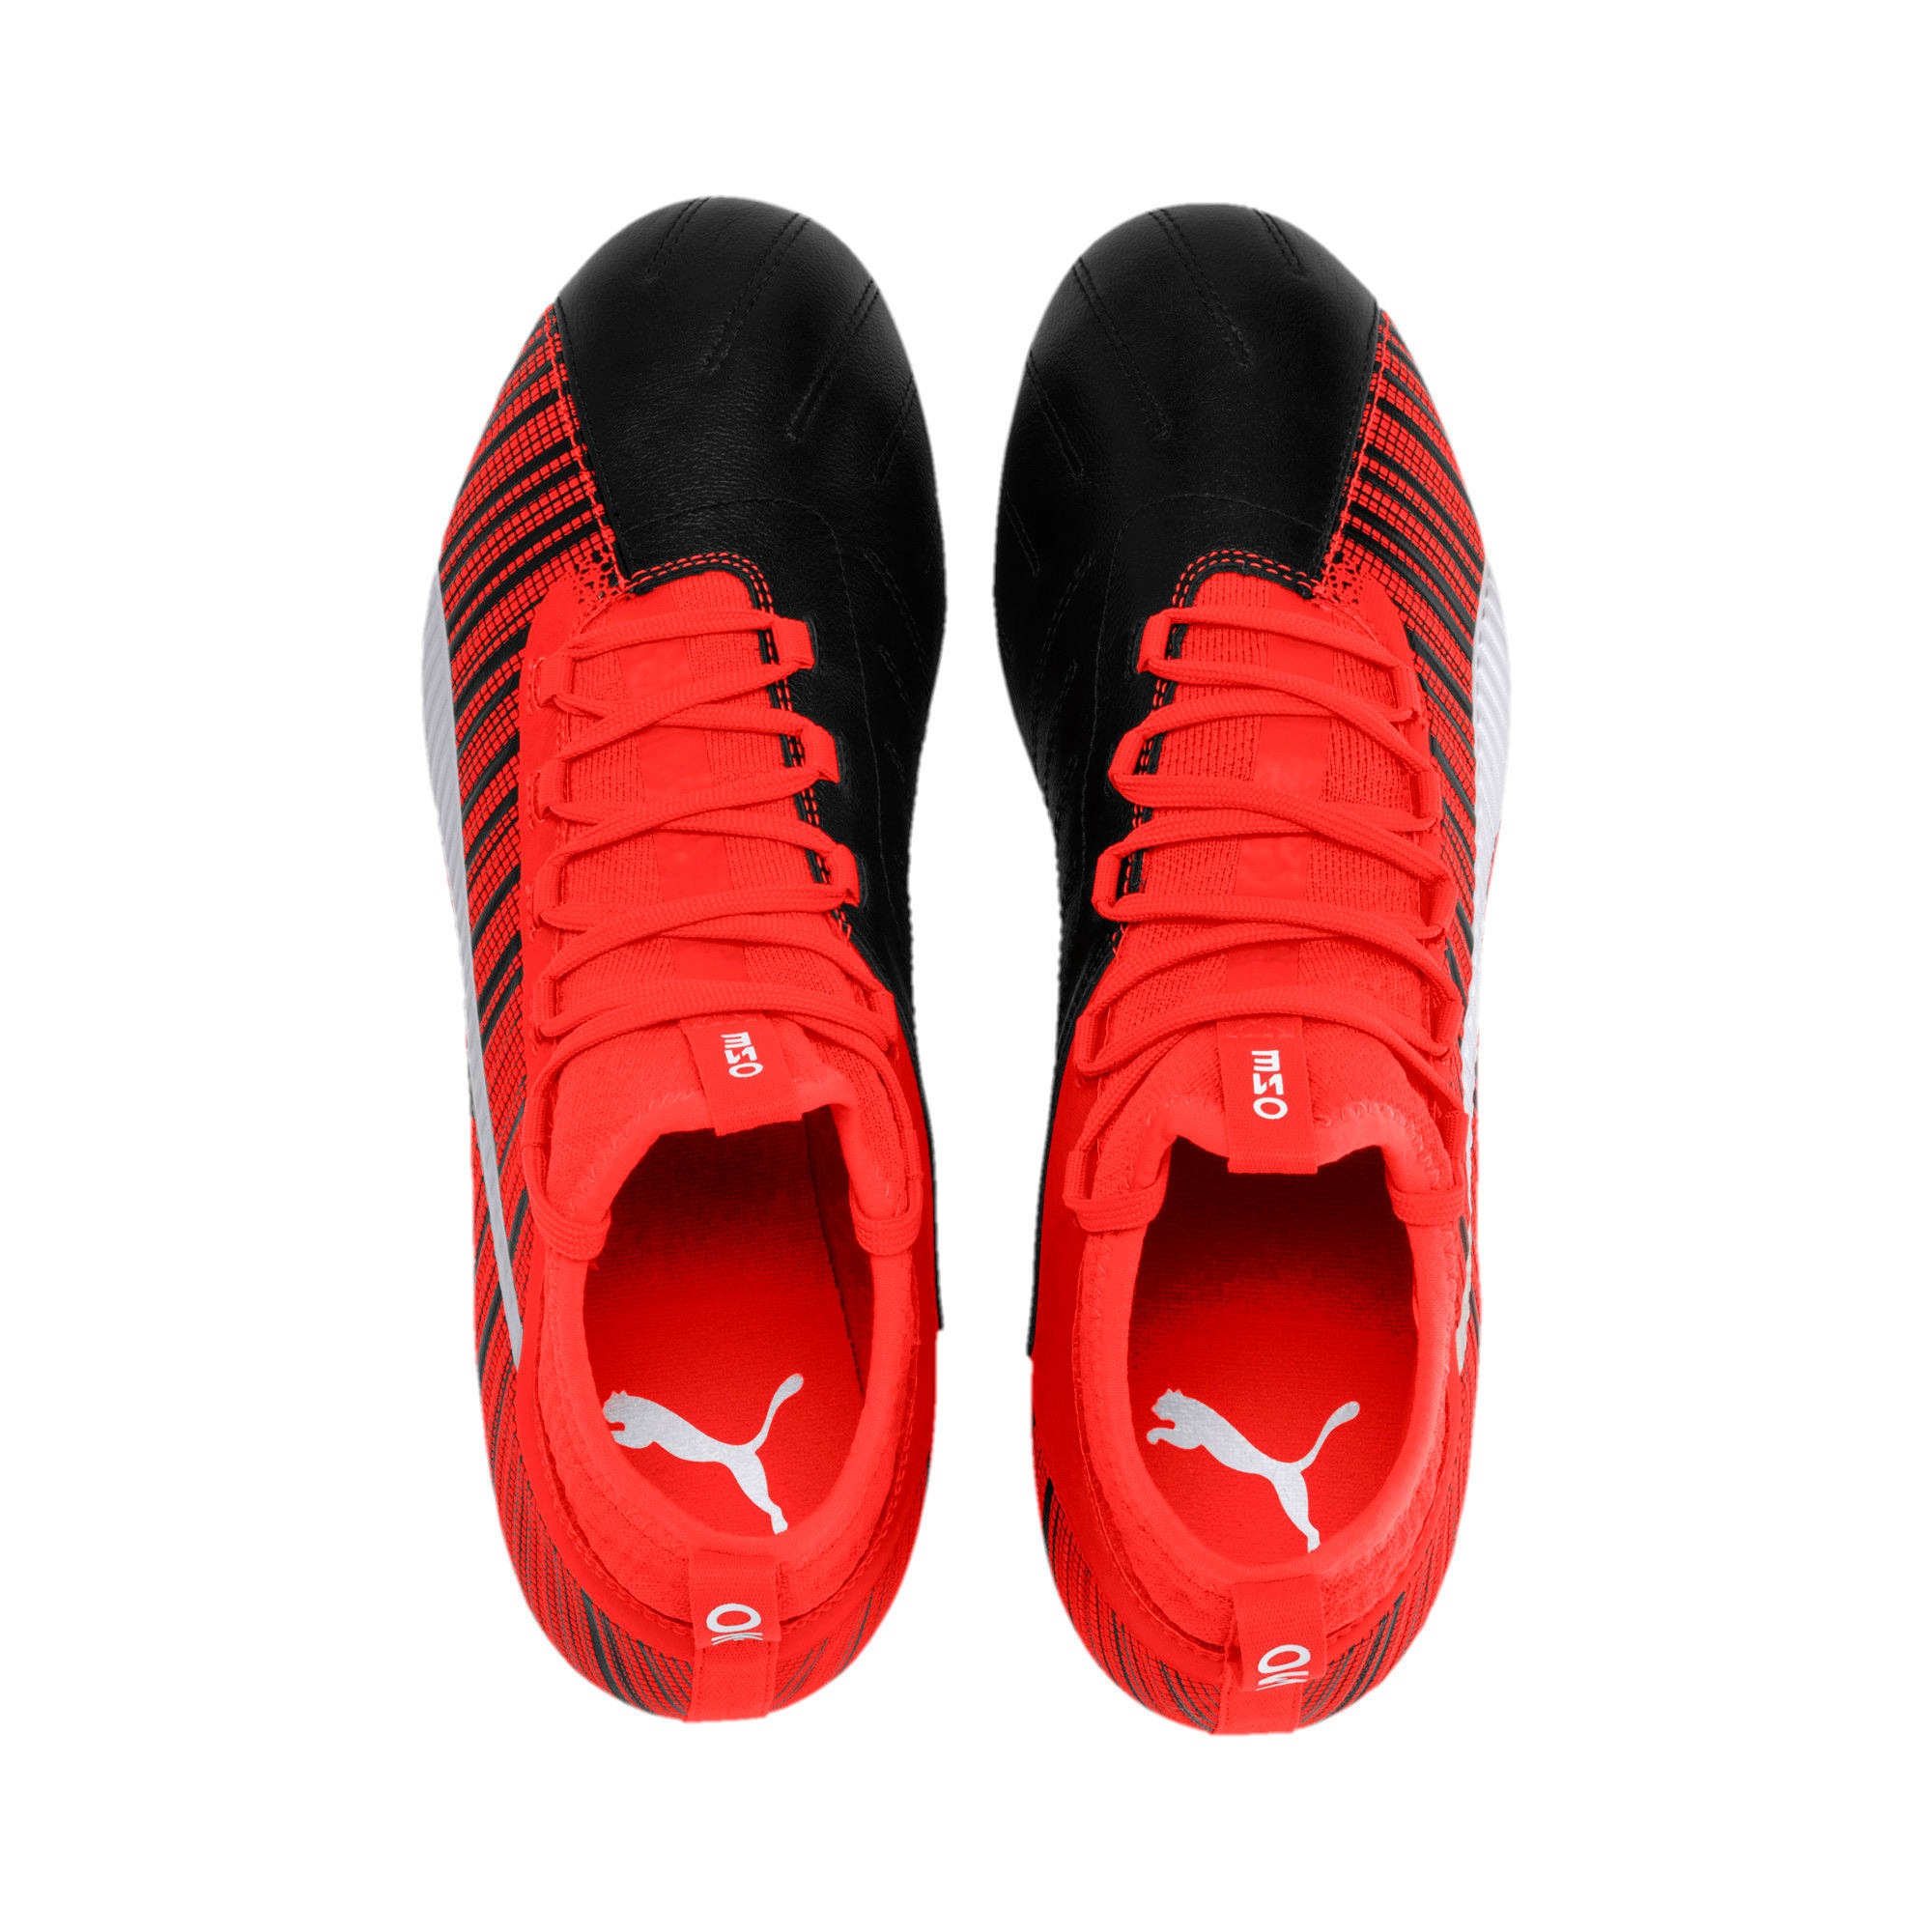 Thumbnail 7 of PUMA ONE 5.3 FG/AG Men's Football Boots, Black-Nrgy Red-Aged Silver, medium-IND